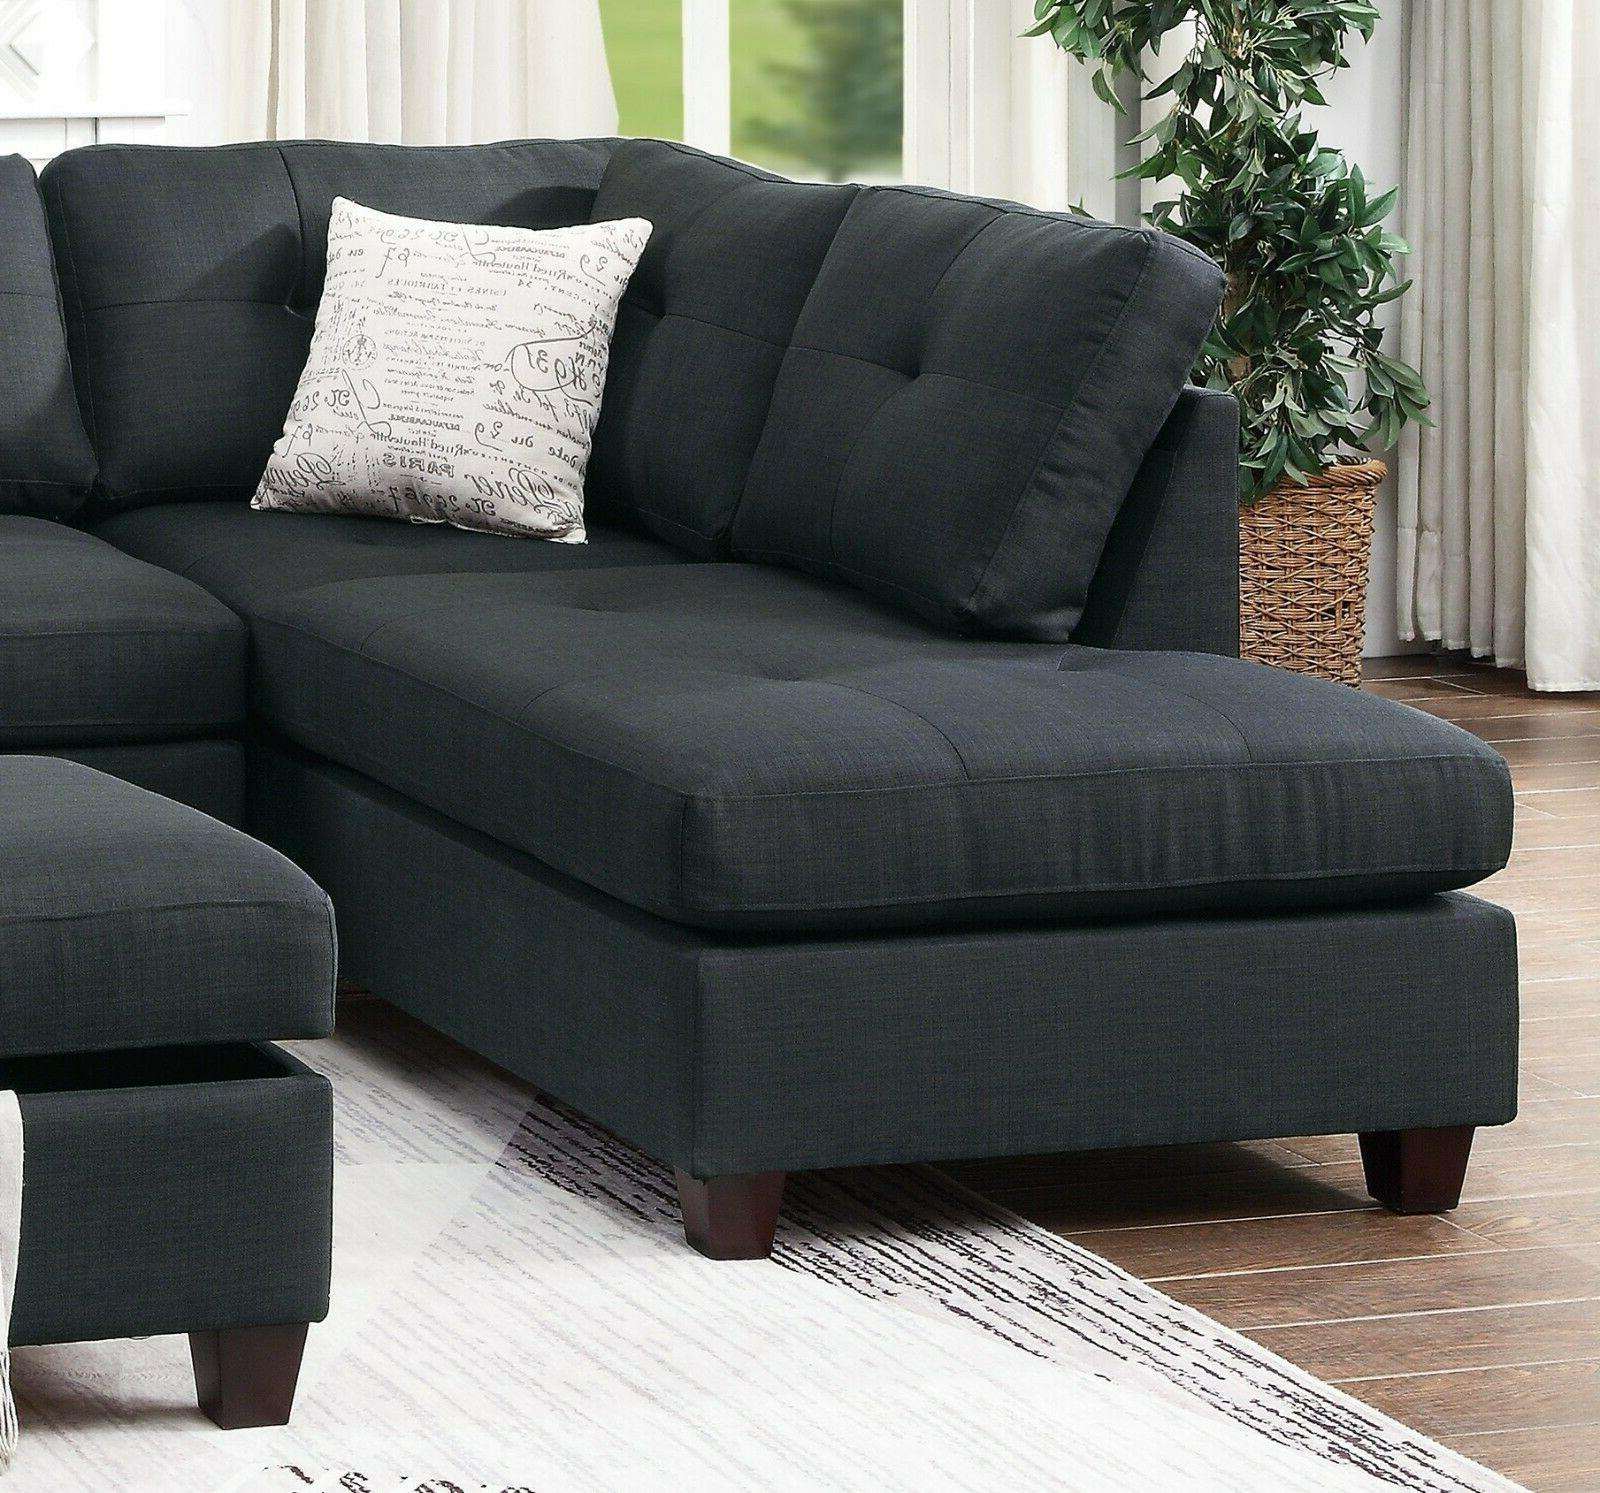 Modern L Shaped Couch Tufted Stud Arm Ottoman Ash Black